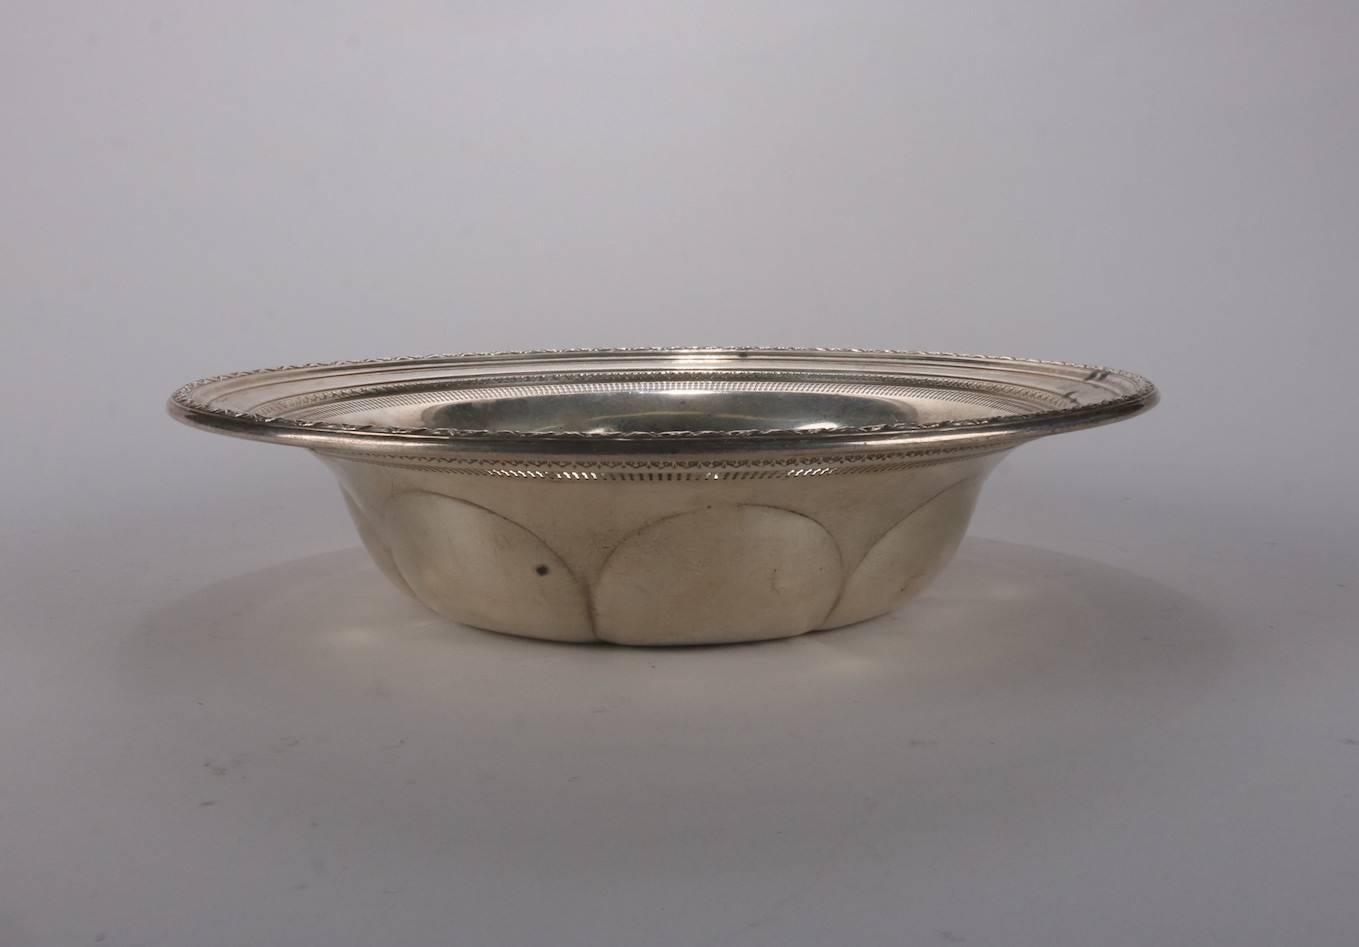 Furniture Antique American Sterling Silver Reticulated Bowl High Quality Other Antique Furniture